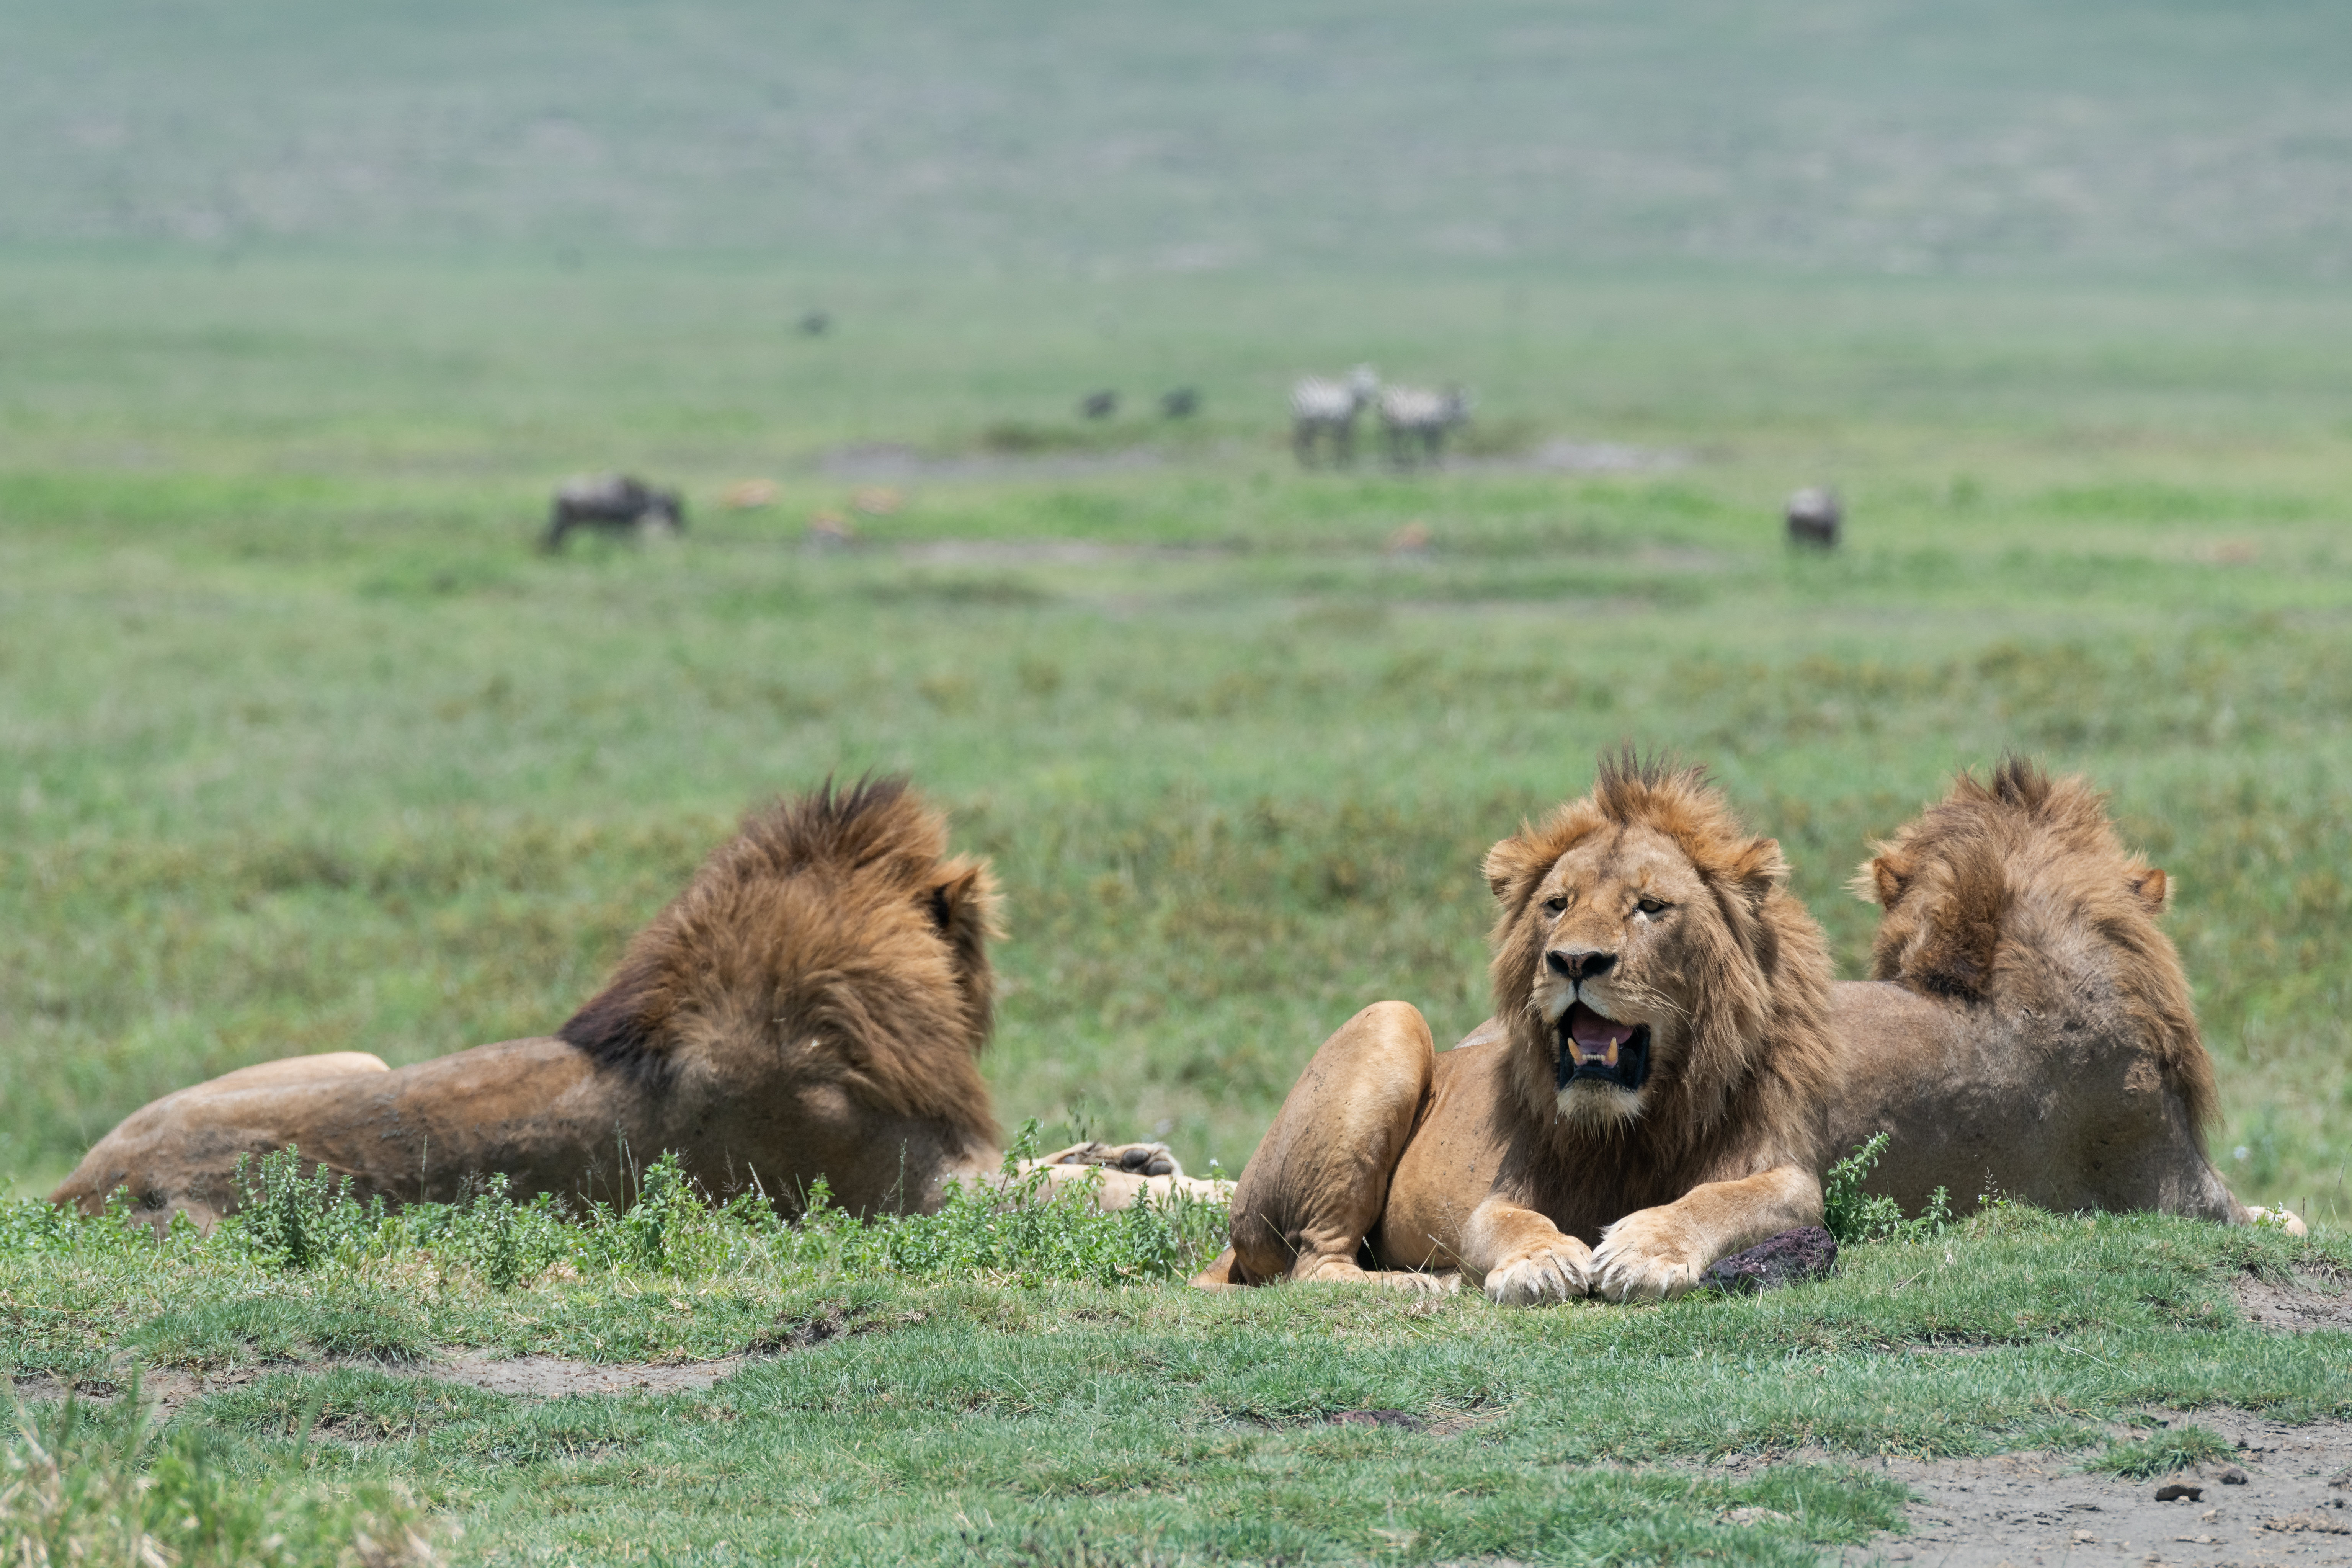 90780 download wallpaper Animals, Lion, Predators, To Fall, Mouth, Grass, Lions screensavers and pictures for free